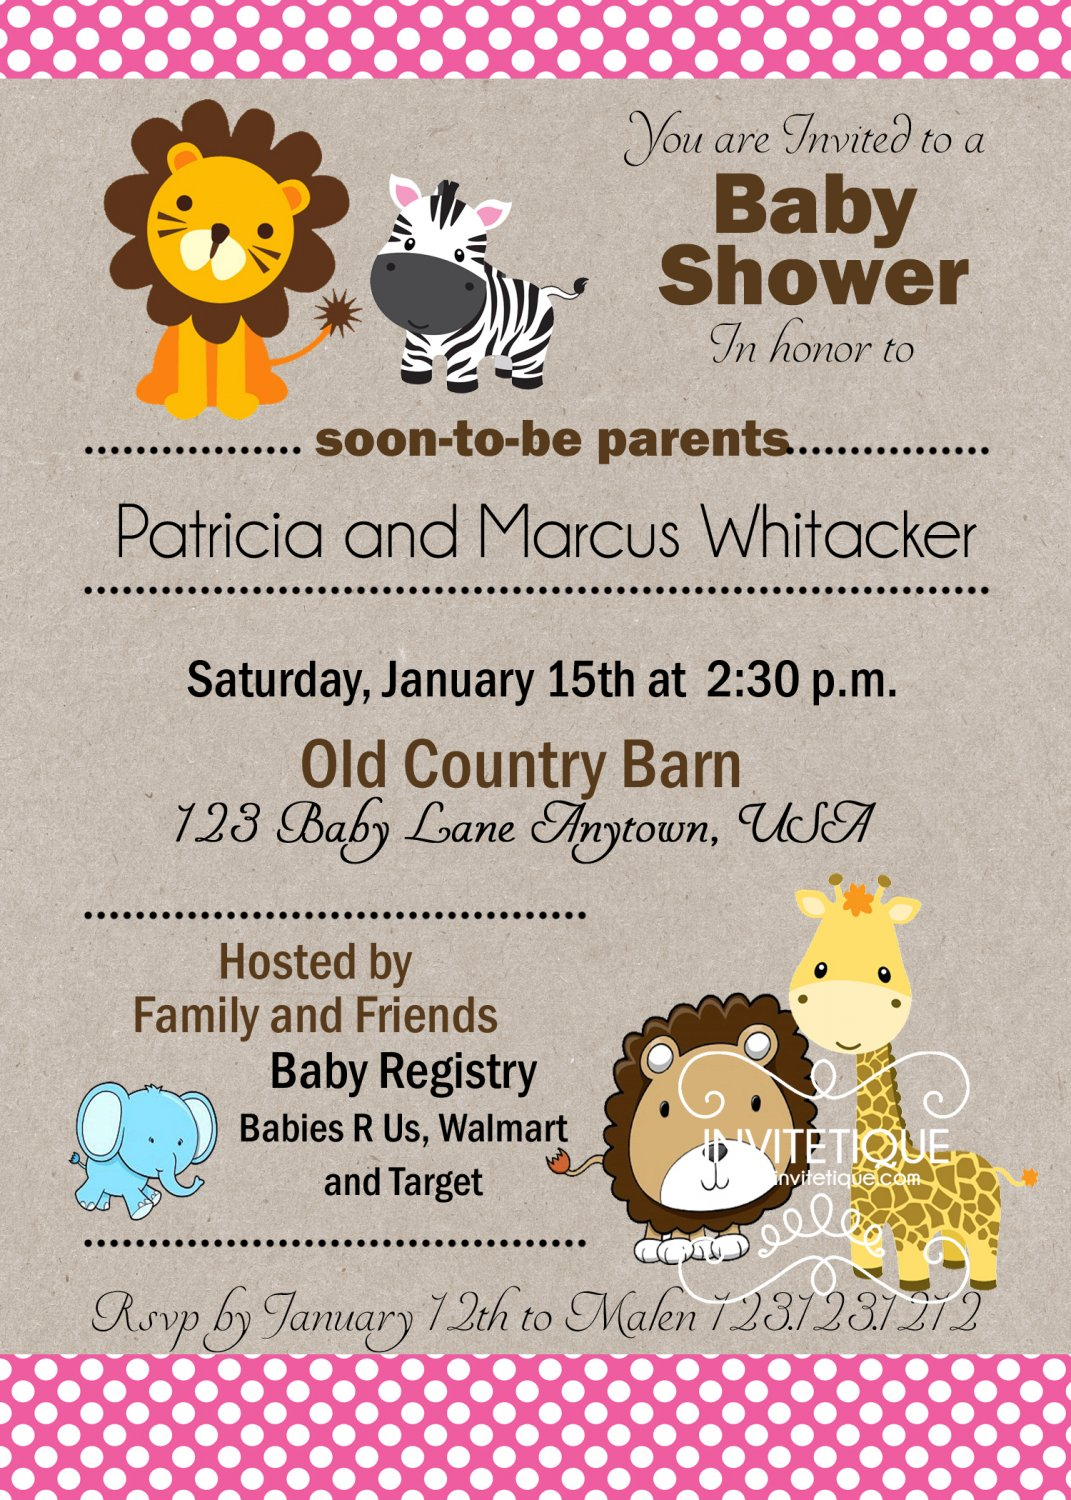 Zoo, Jungle, Safari Animals Pink Polka Dots Baby Shower Invitation - Customizable - Printable